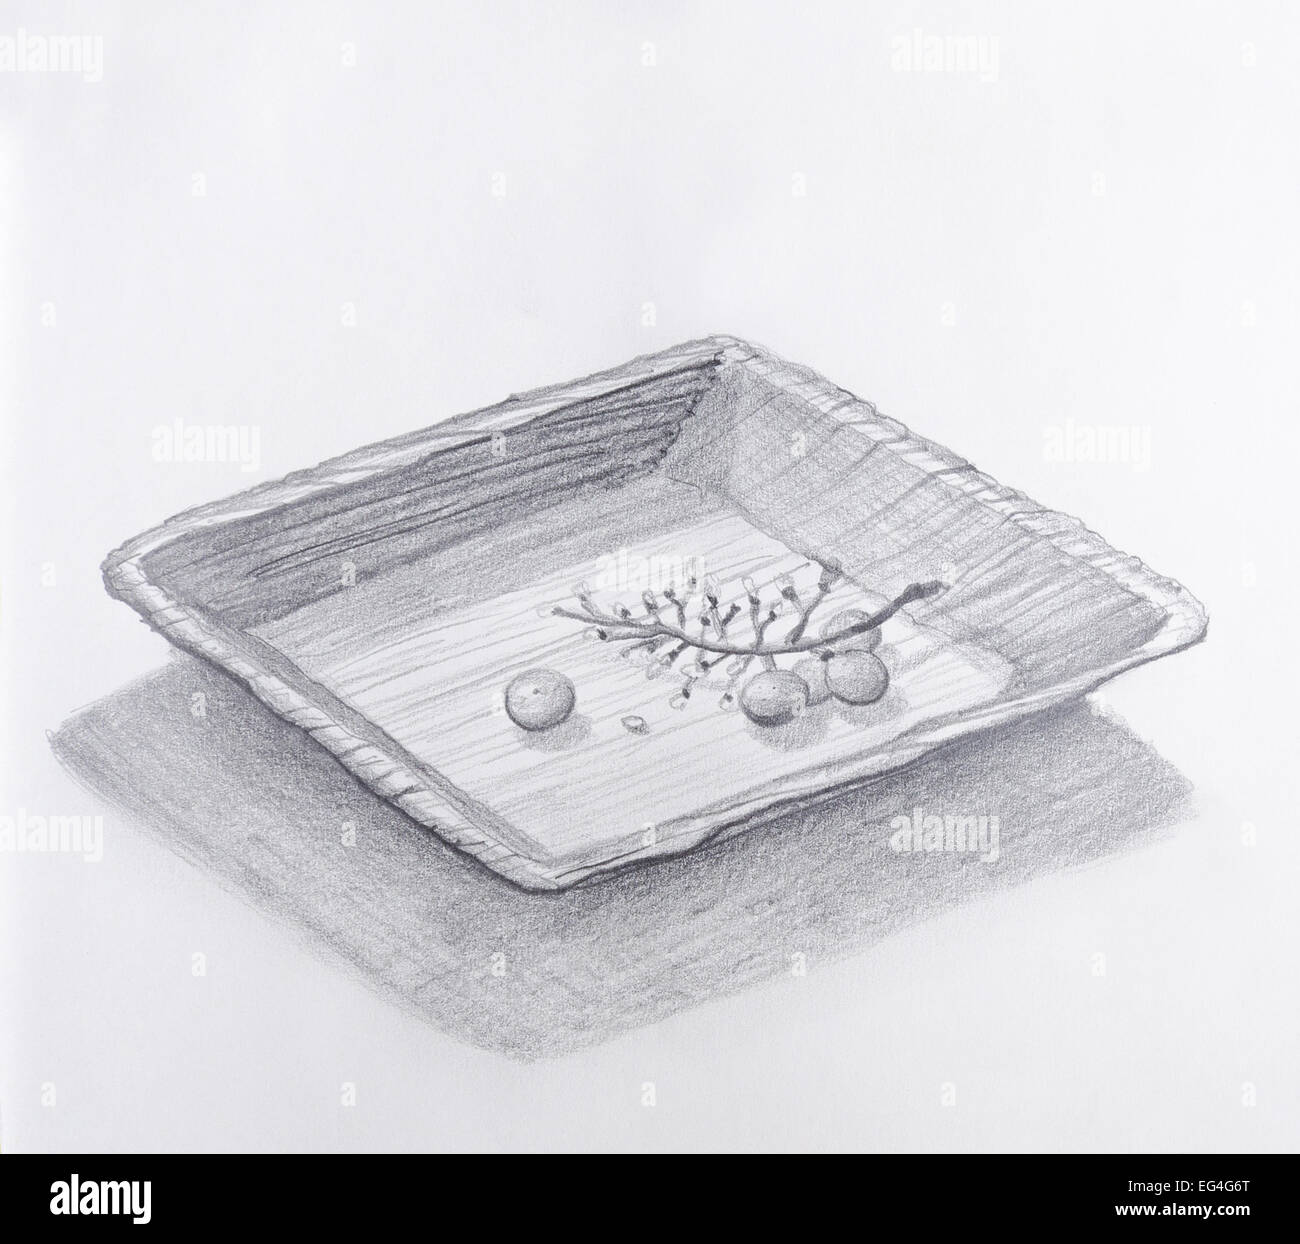 Pencil Drawing Of Eaten Up Wine Grapes In A Wooden Square Plate